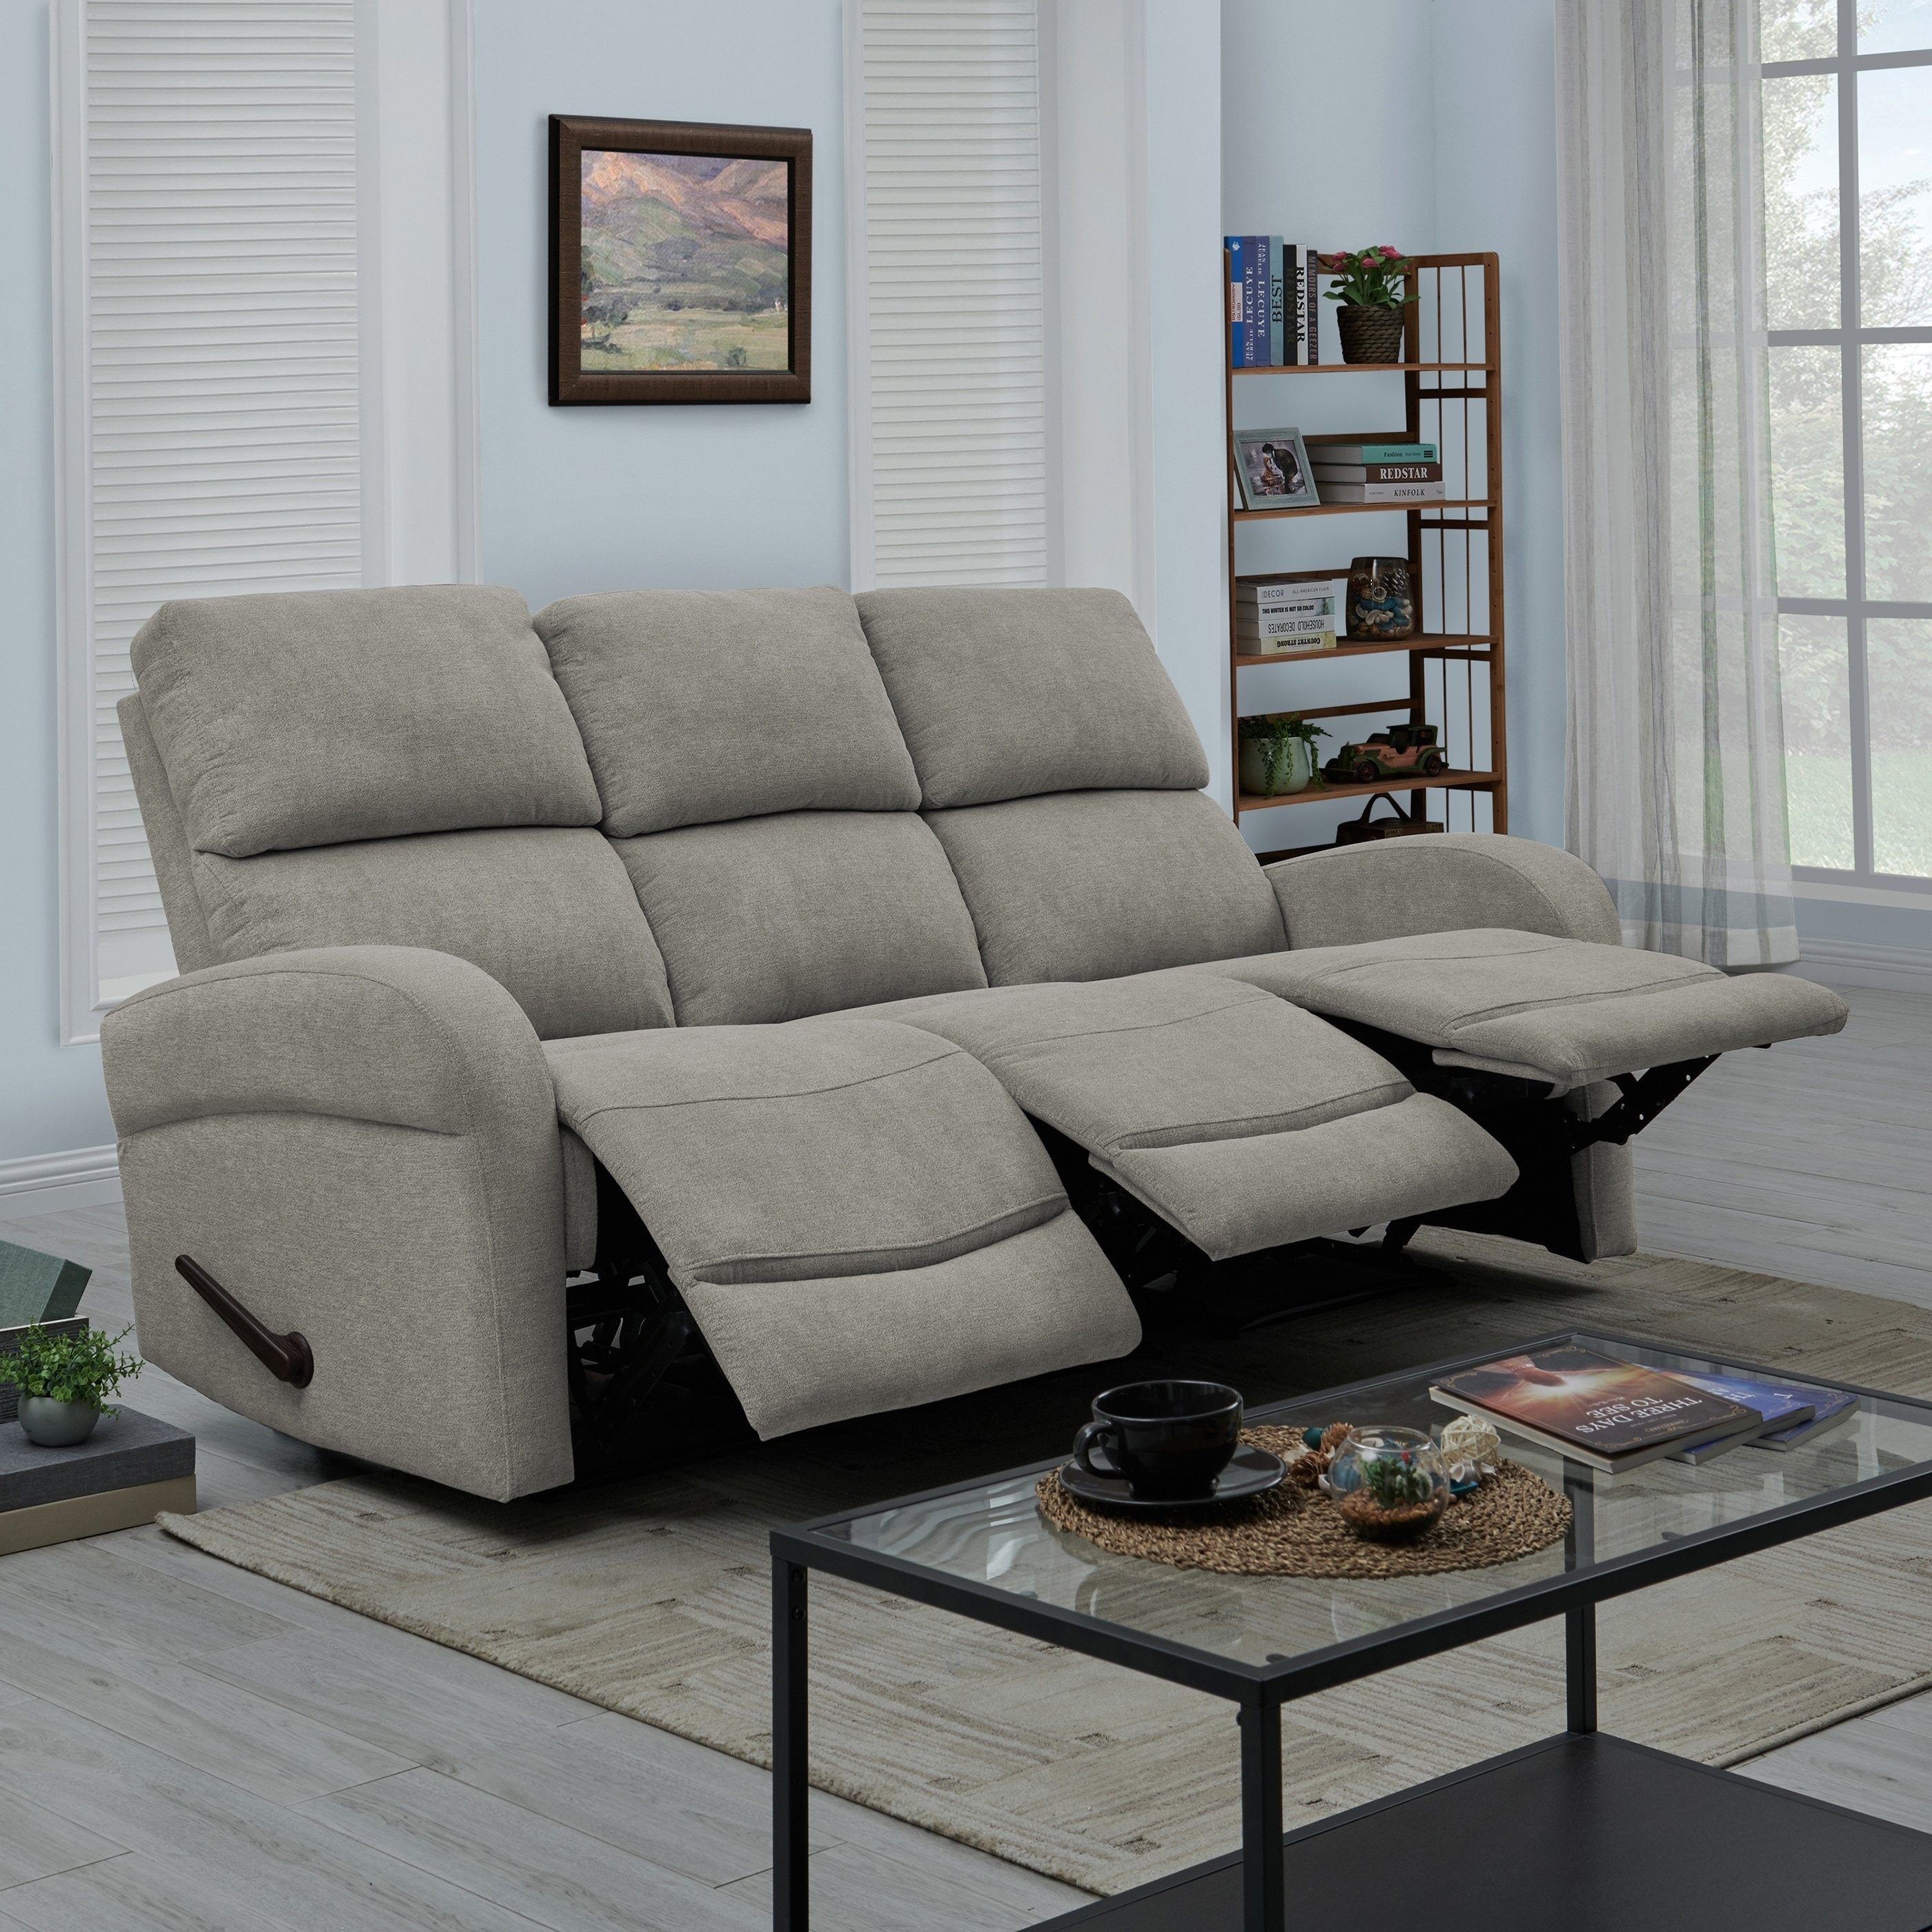 Copper Grove Herentals Grey Chenille 3-seat Recliner Sofa | eBay